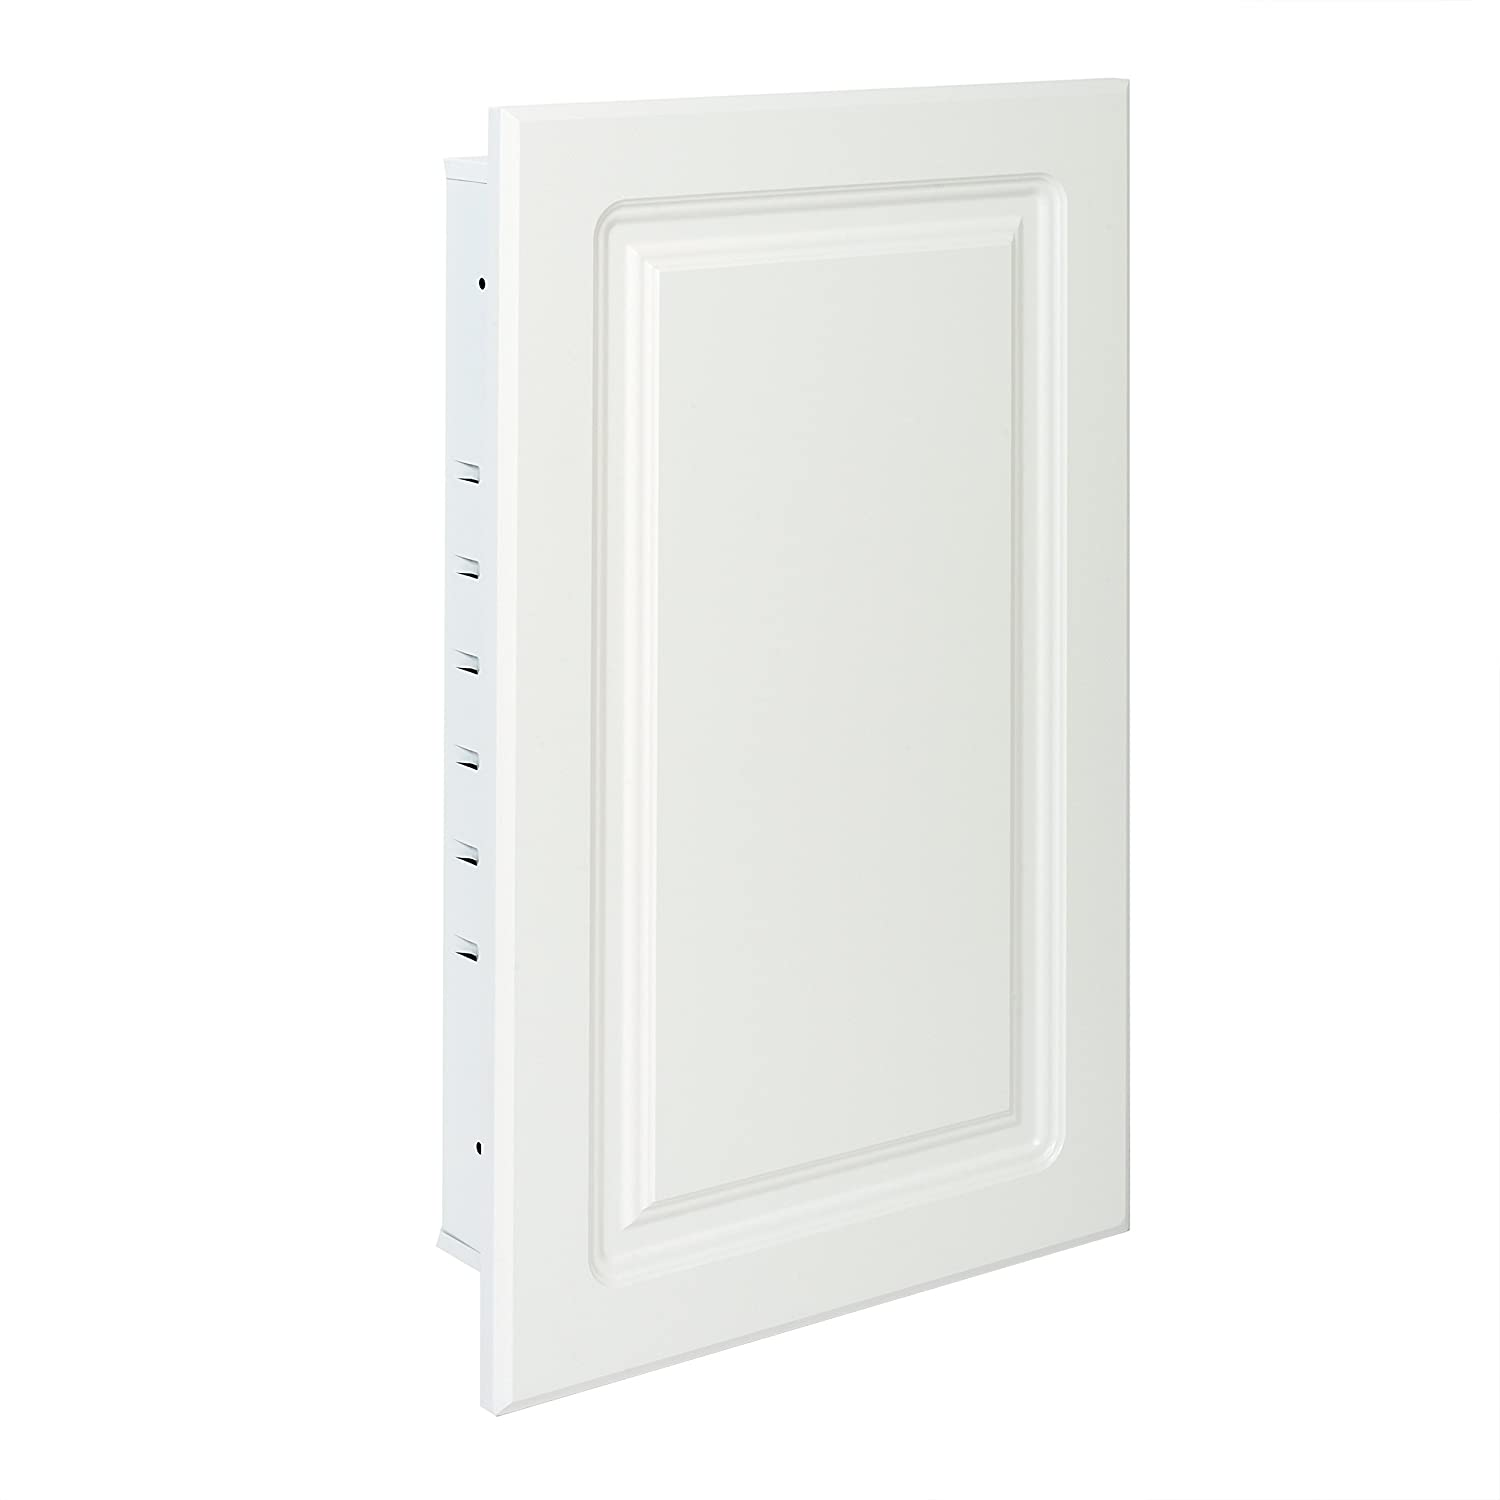 American Pride ST9912RPR1 Recessed White Raised Panel Door, Steel Tech Body Medicine Cabinet 16 x 26